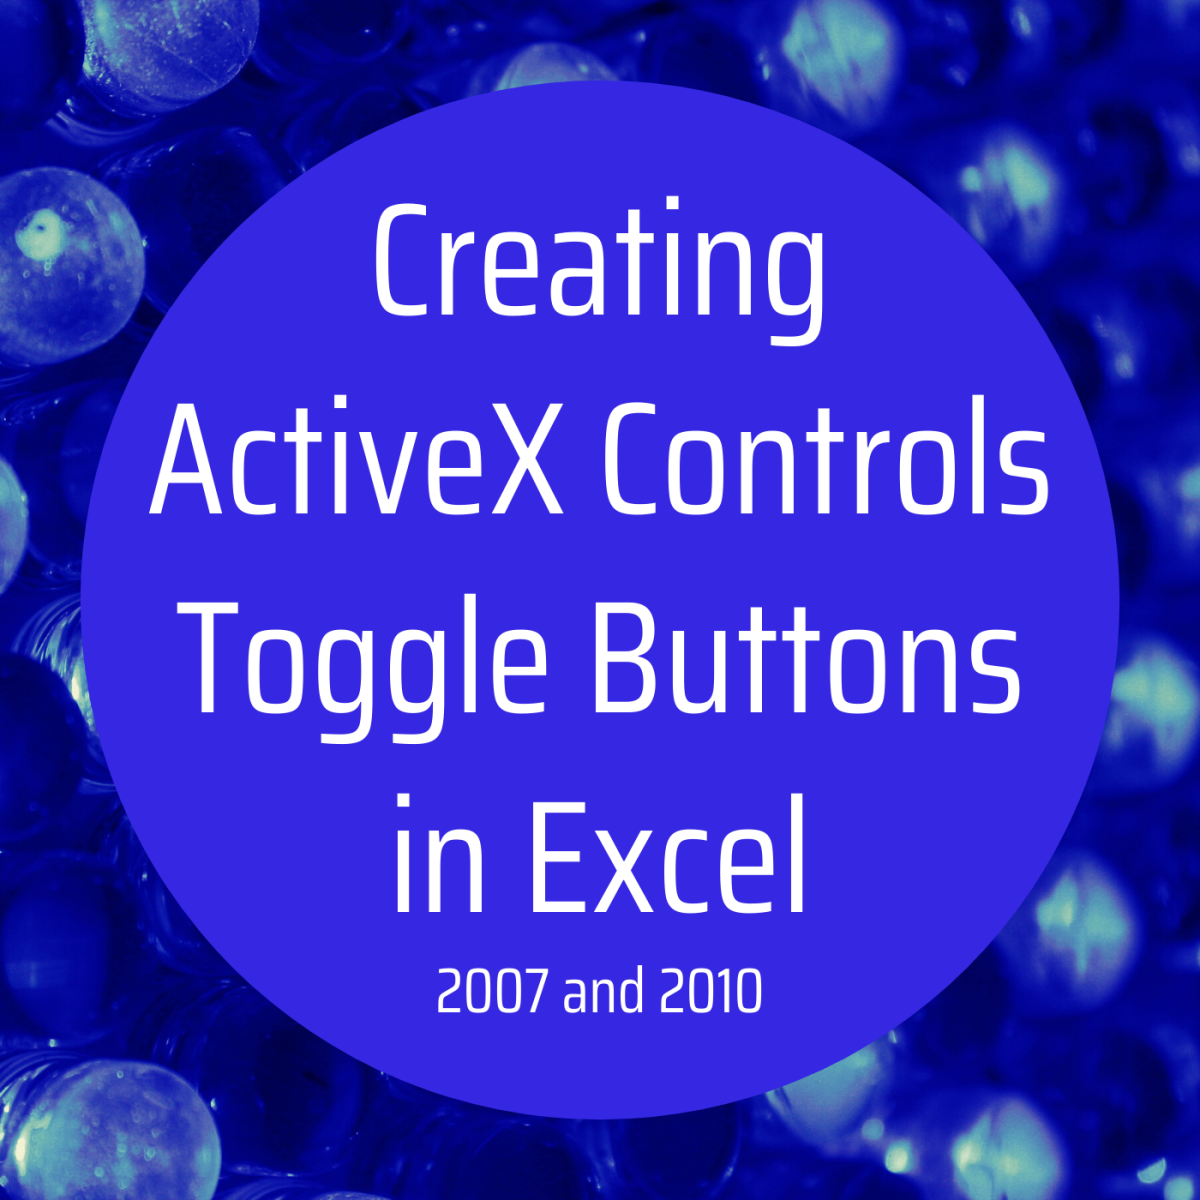 Learn about the benefits of Toggle Buttons in Excel and how to create, configure, and use them effectively.